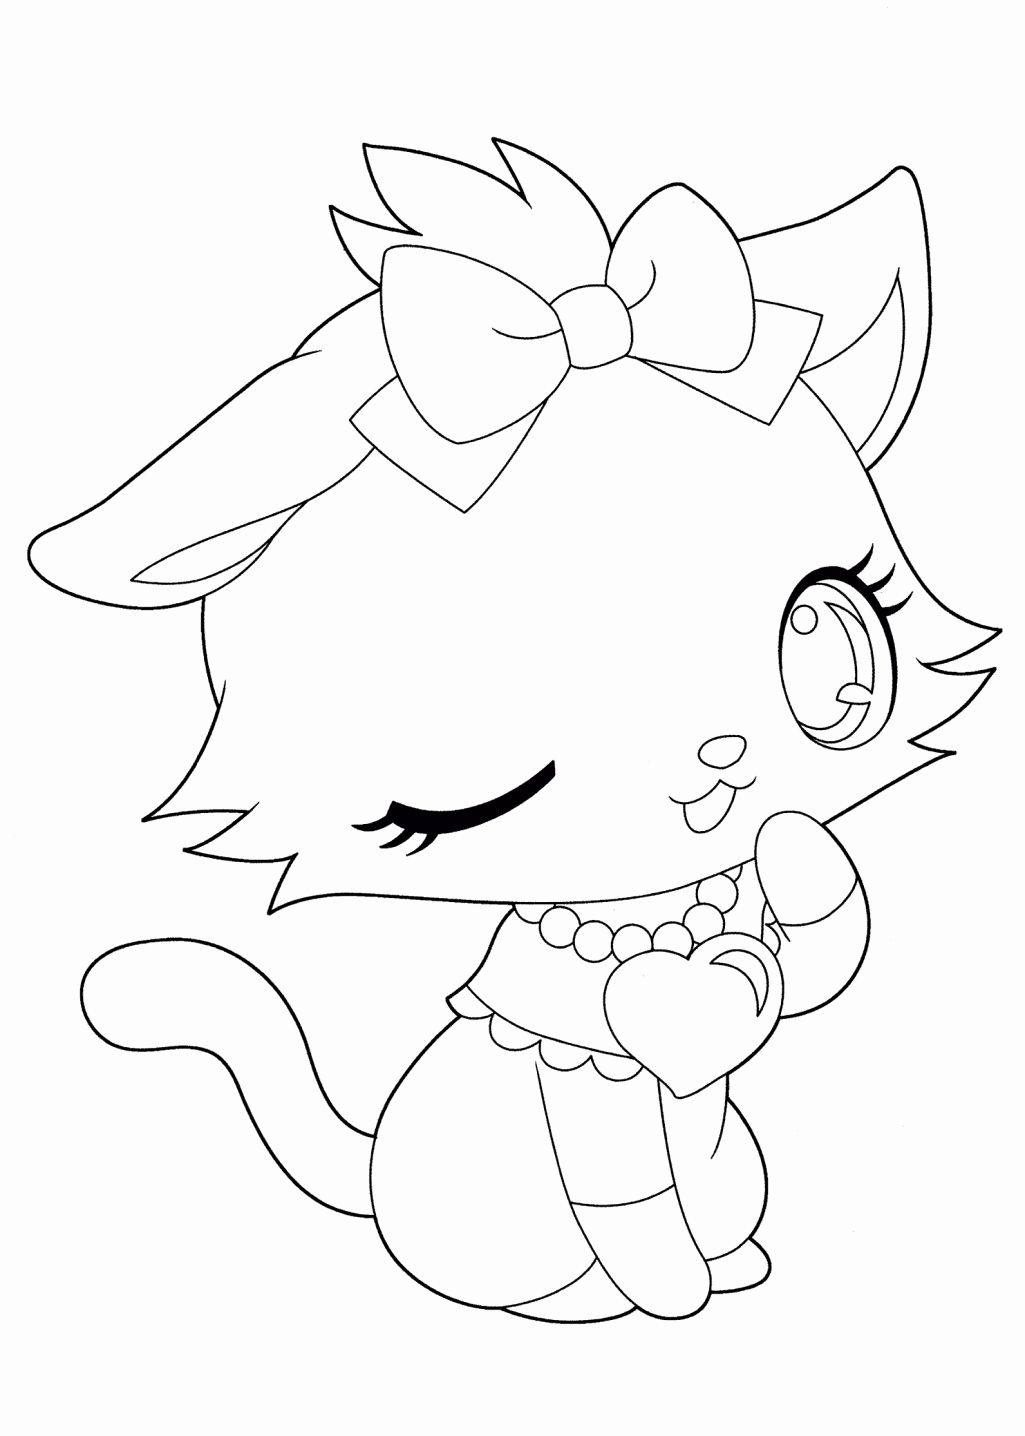 Printable Anime Coloring Pages New Anime Coloring Pages Best Coloring Pages For Kids Hello Kitty Colouring Pages Kitty Coloring Cat Coloring Page [ 1436 x 1025 Pixel ]